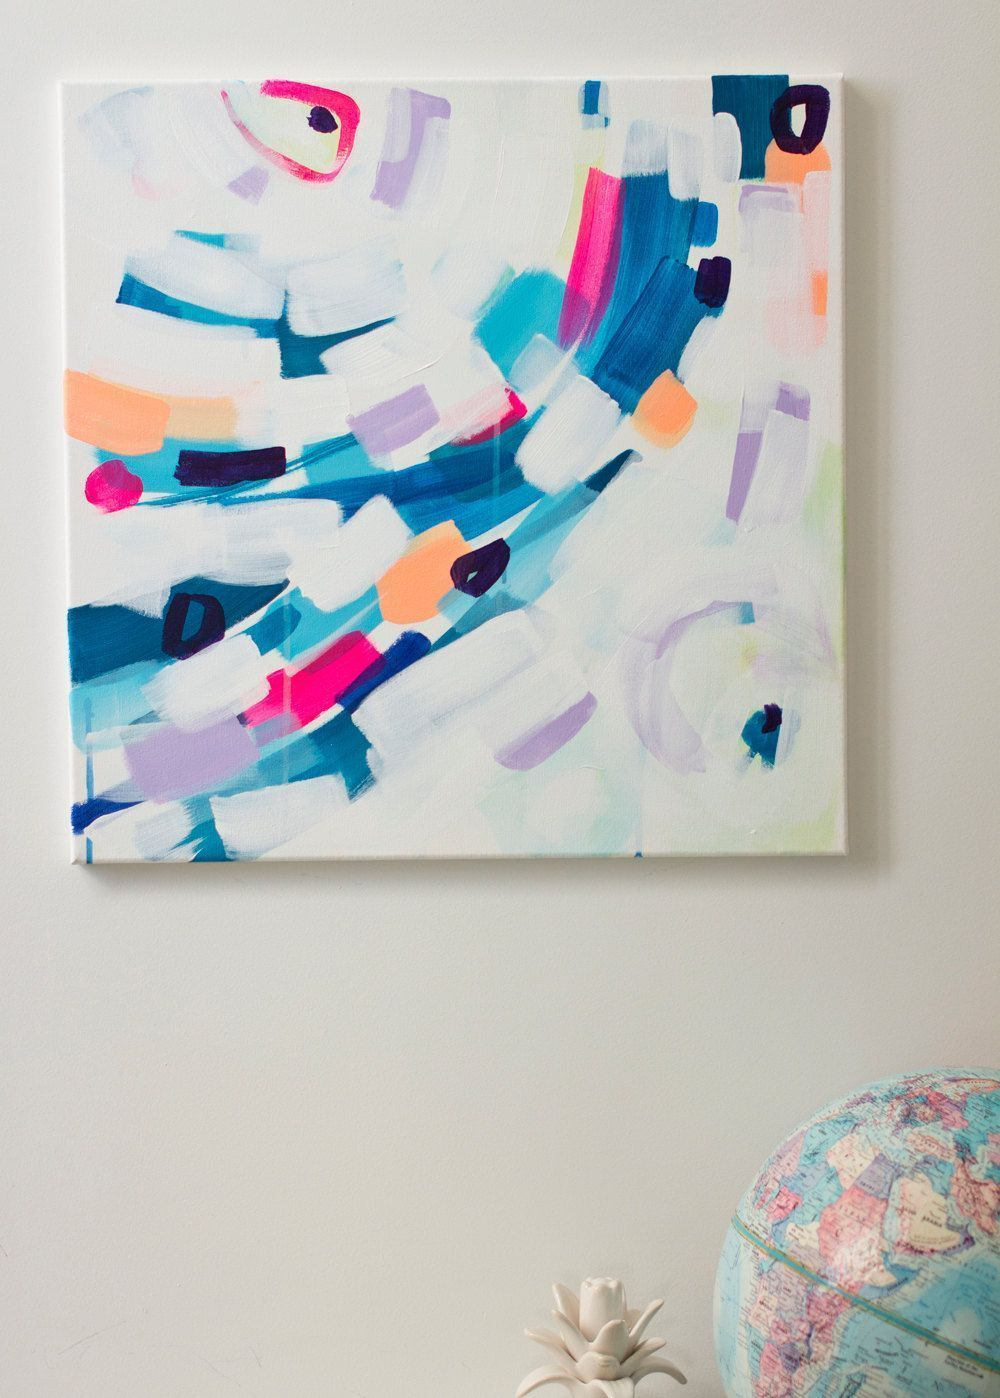 mm  stretched canvas contemporary abstract artwork blue sweeping lines on  fresh white background with pops of pink and yellow also rh pinterest